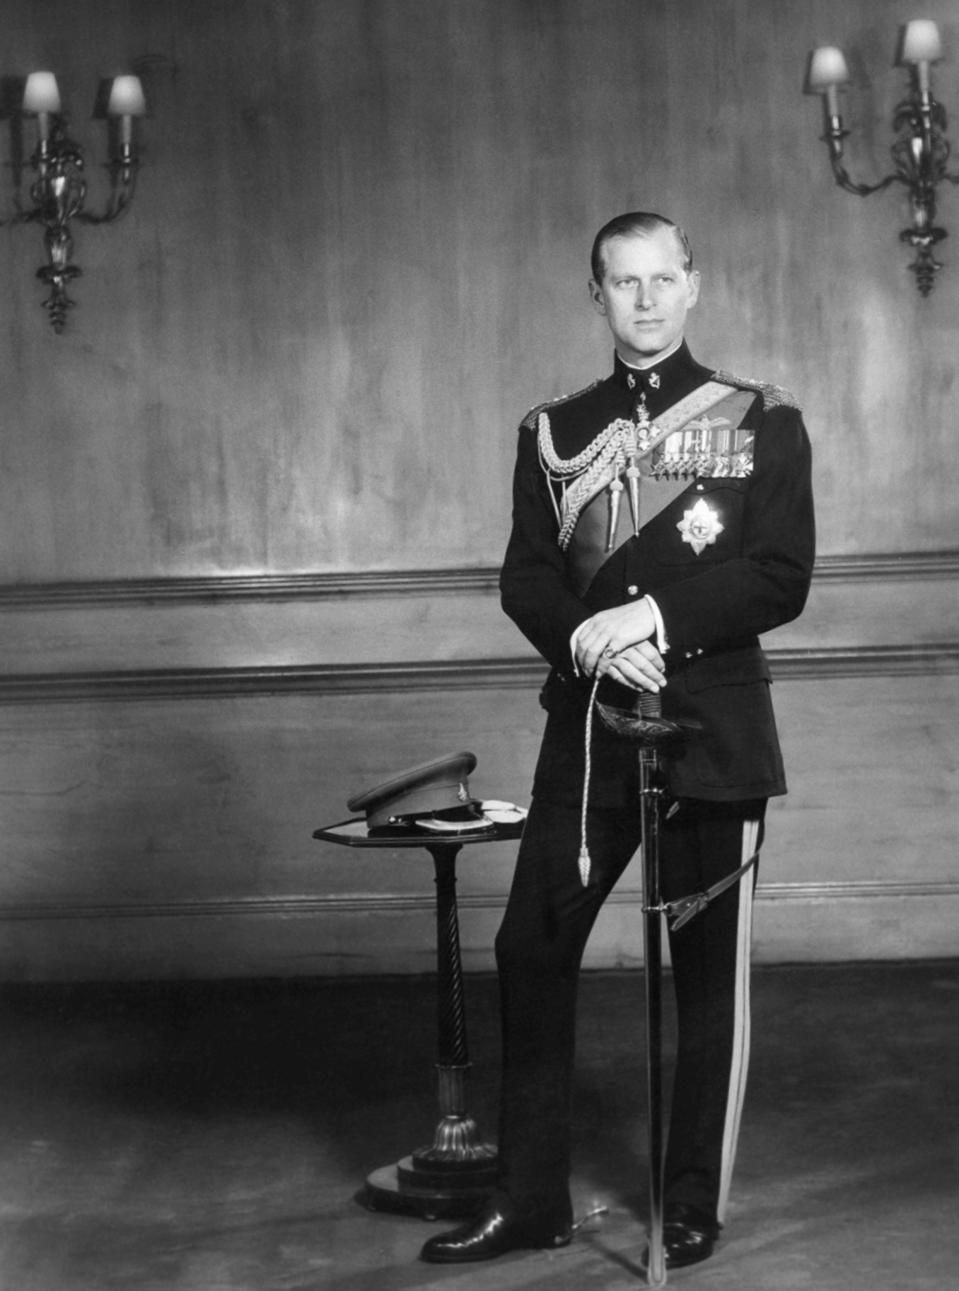 """FILE - In this June 10, 1956 file photo, Prince Philip, the Duke of Edinburgh poses for a photo as he observes his 35th birthday anniversary in Buckingham Palace, London. Britain's Prince Philip stood loyally behind behind Queen Elizabeth, as his character does on Netflix's """"The Crown."""" But how closely does the TV character match the real prince, who died Friday, April 9, 2021 at 99? Philip is depicted as a man of action in """"The Crown,"""" and he served with distinction in the navy in World War II. He was also an avid yachtsman and polo player.(AP Photo/File)"""